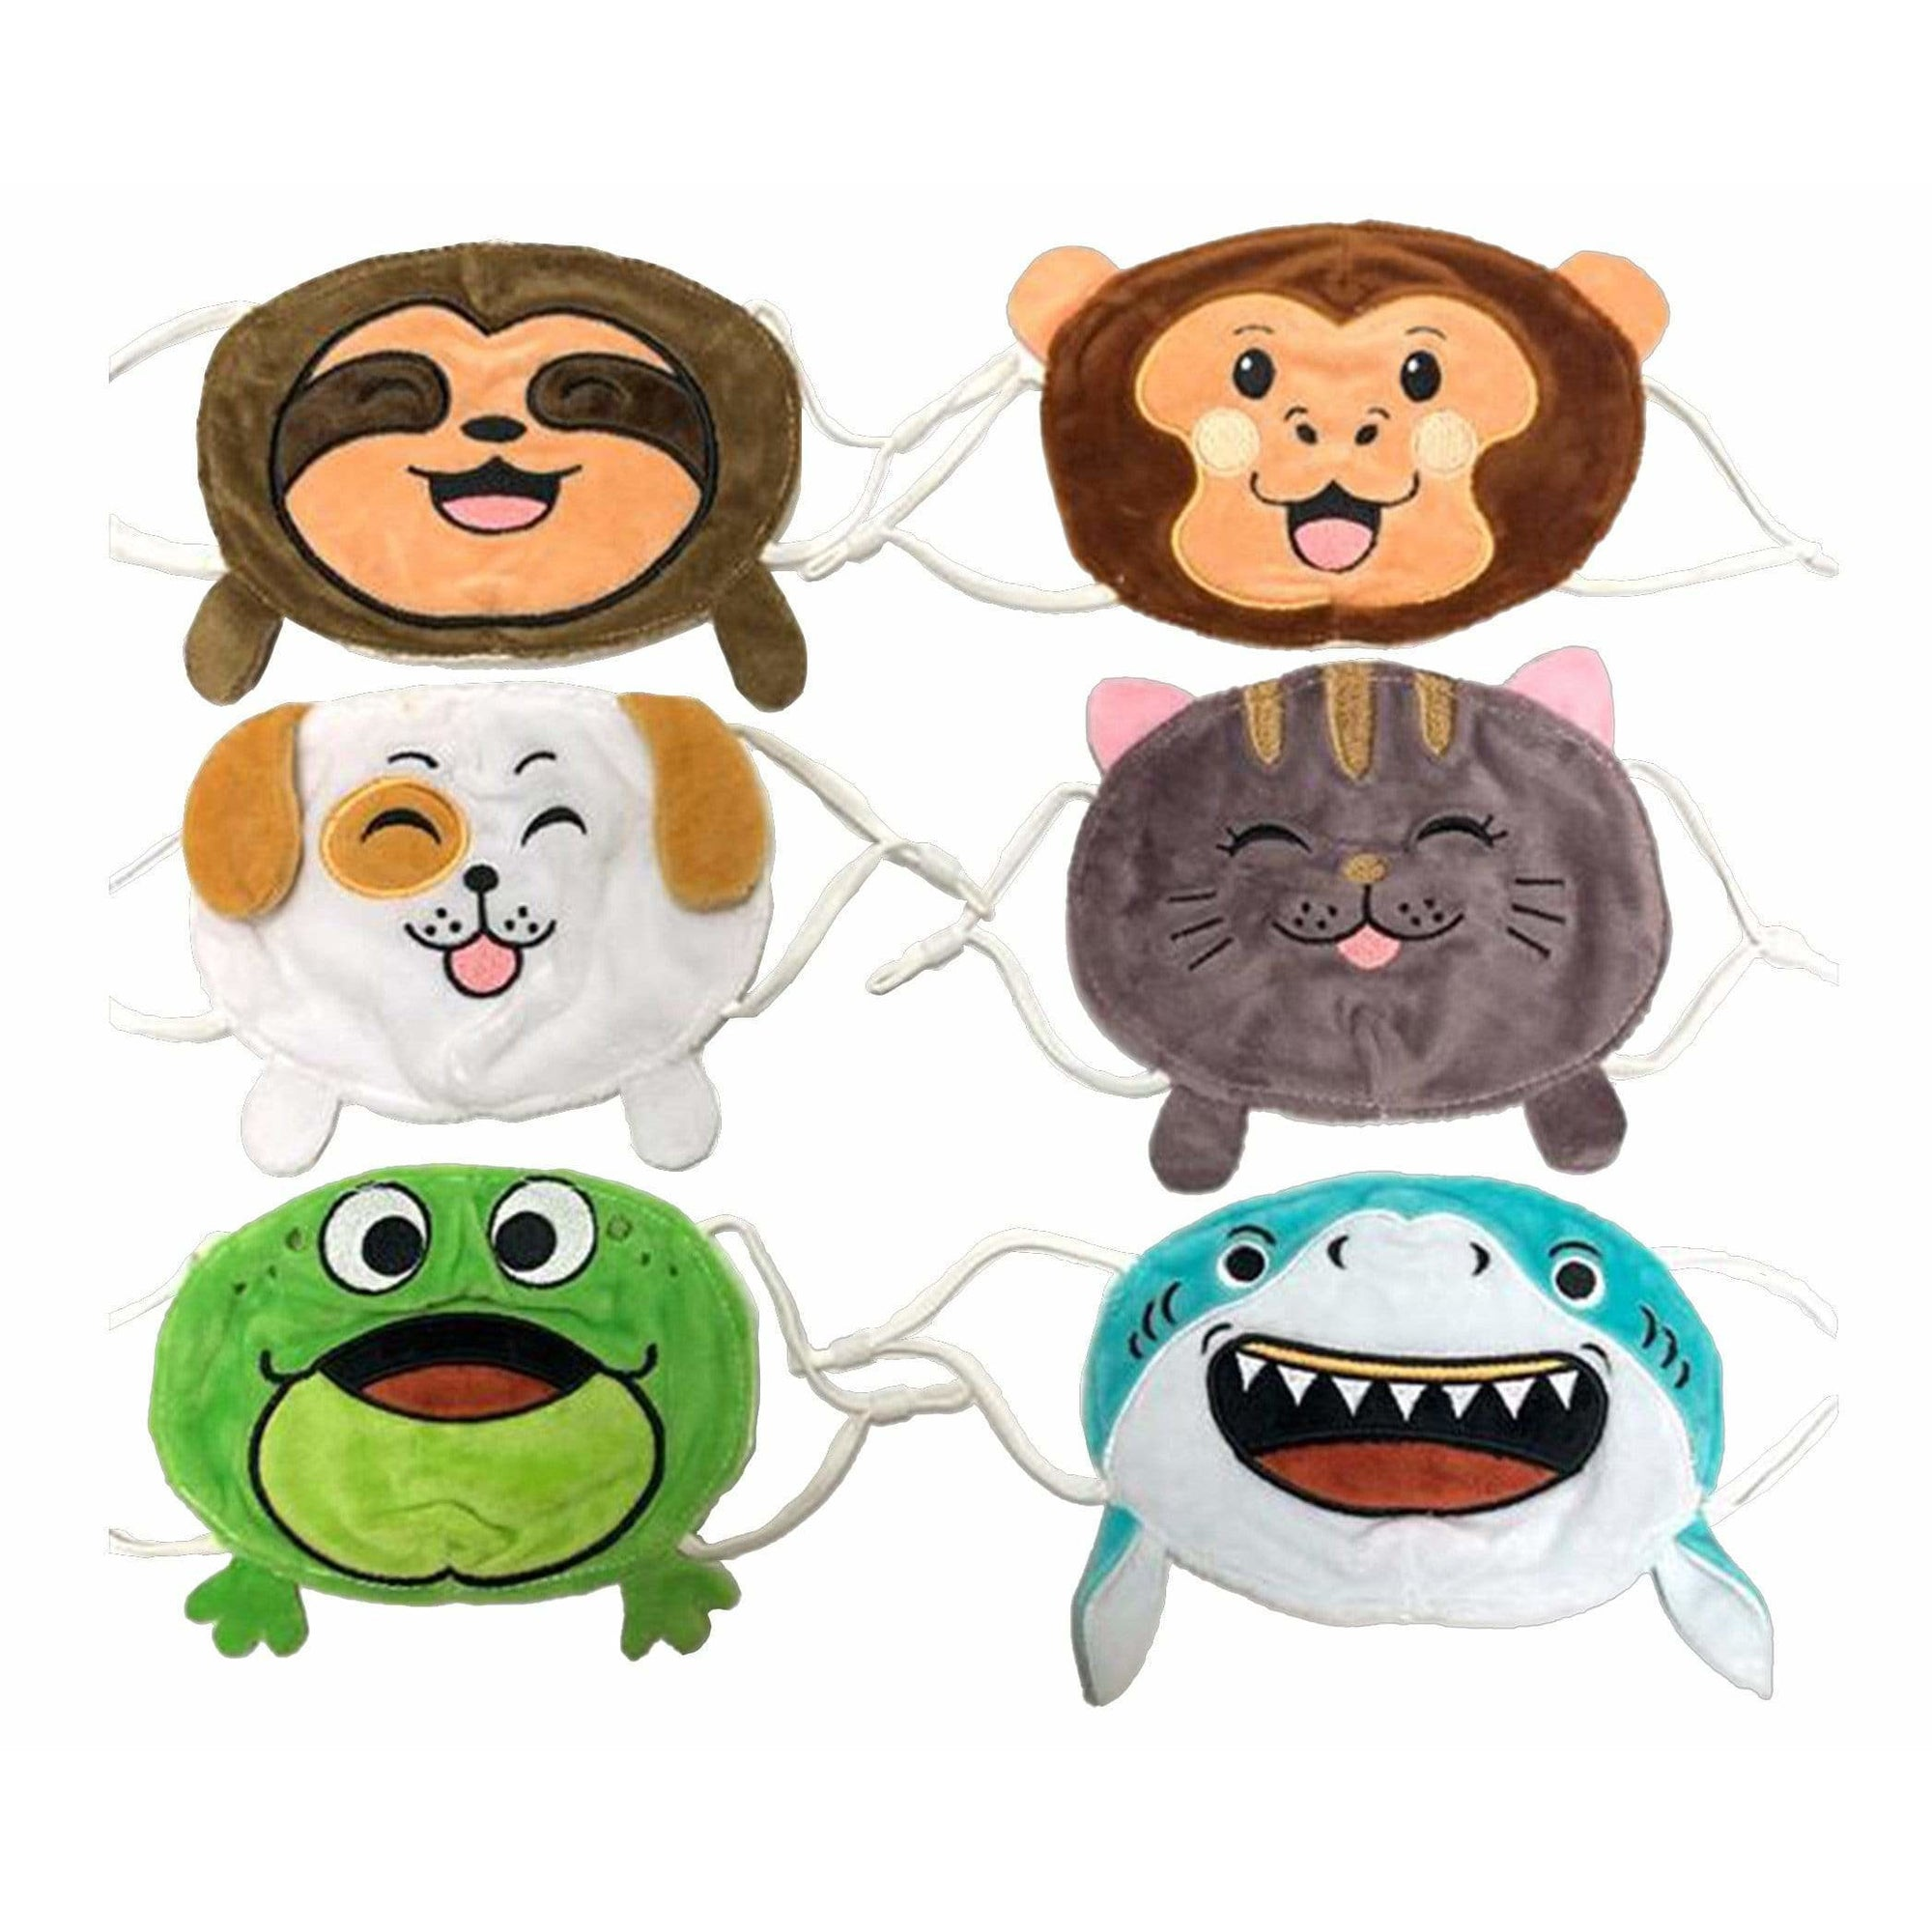 Streamline Personal Care Plush Animal Kid Face Masks with Antibacterial Silver Ion Lining